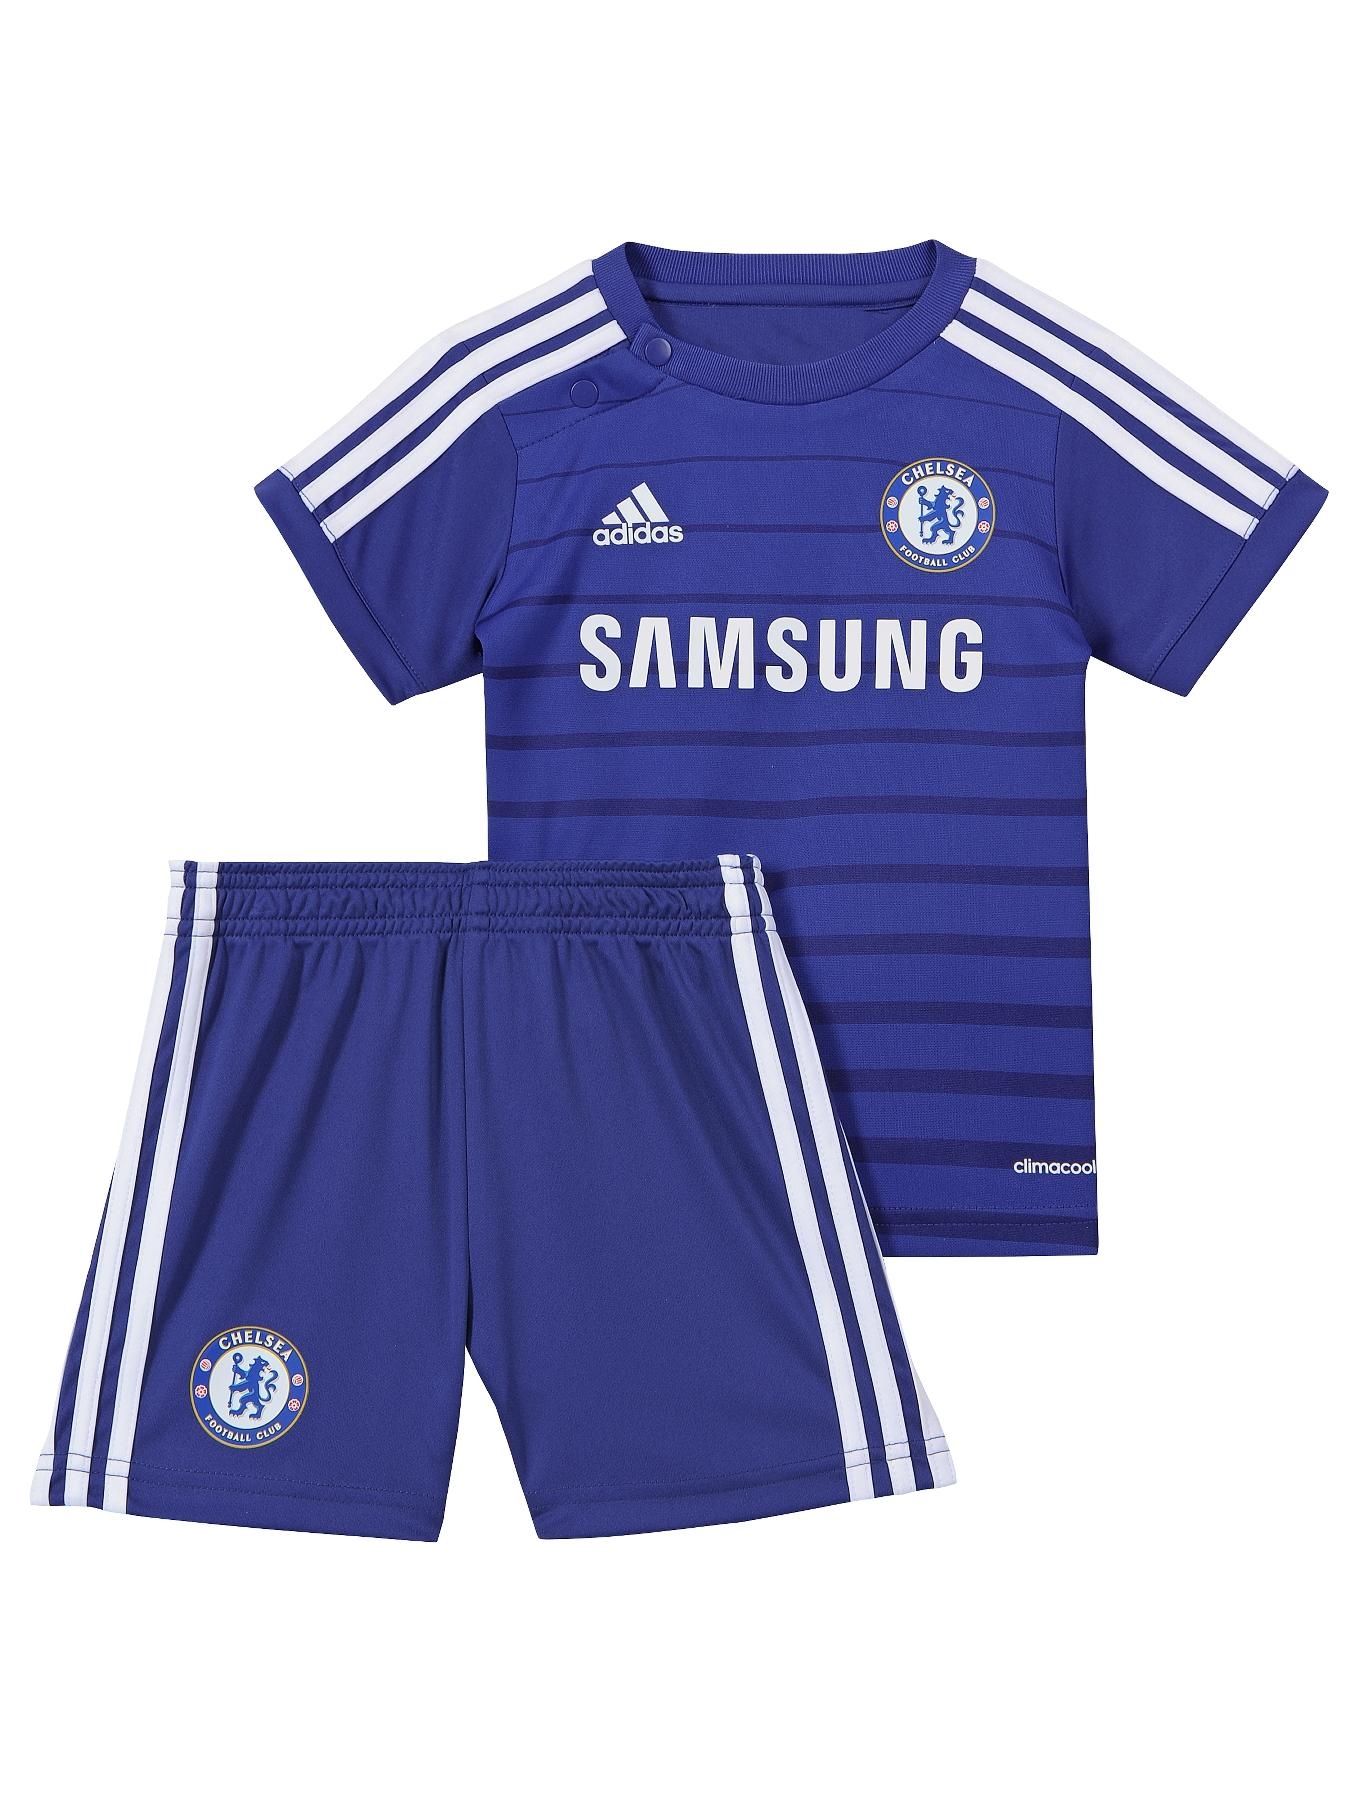 Chelsea 2014/15 Home Baby Kit, Blue